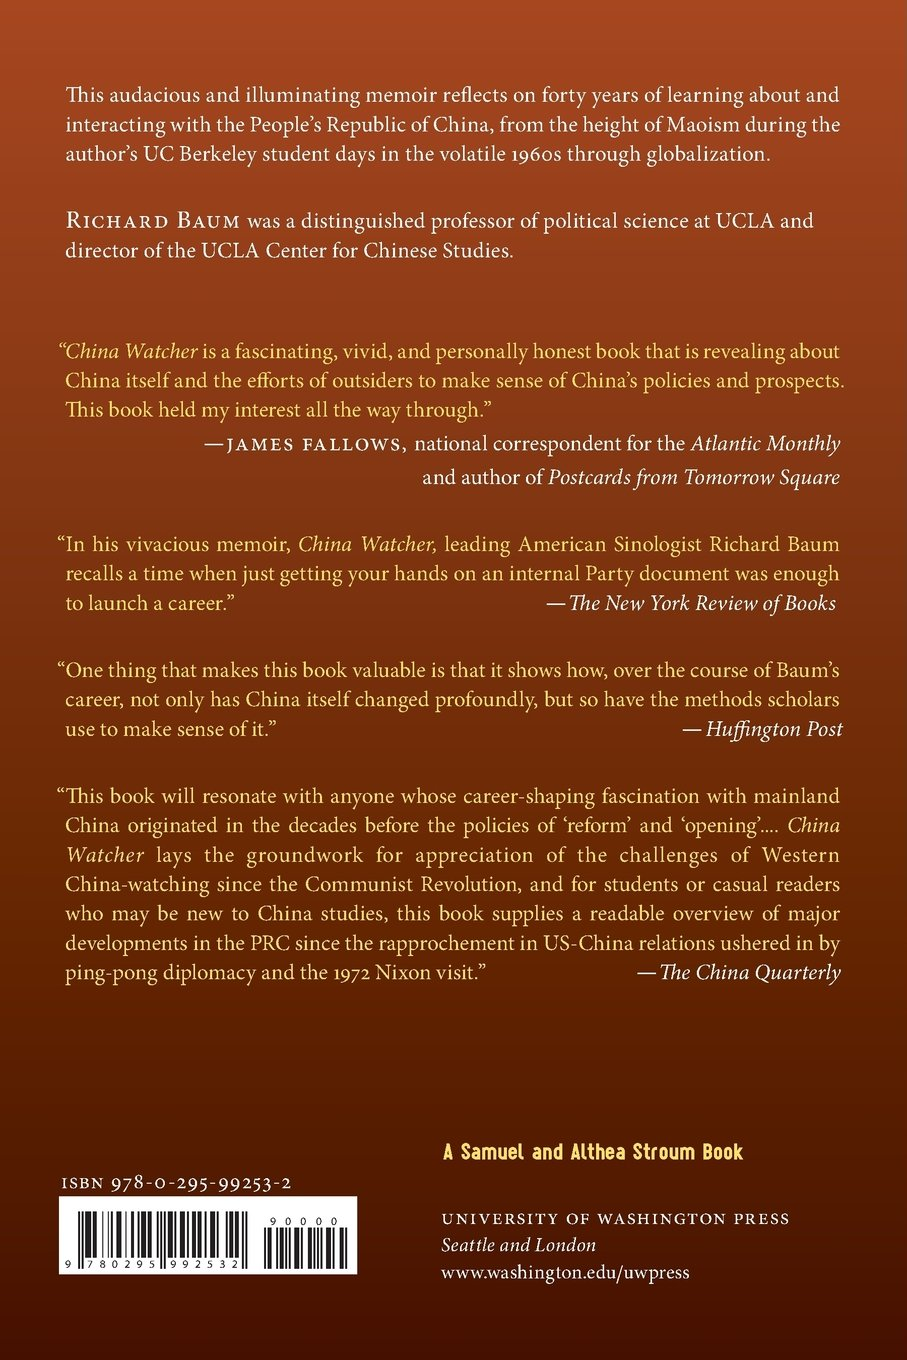 Amazon China Watcher Confessions Of A Peking Tom Samuel And Althea Stroum Books 9780295992532 Richard Baum